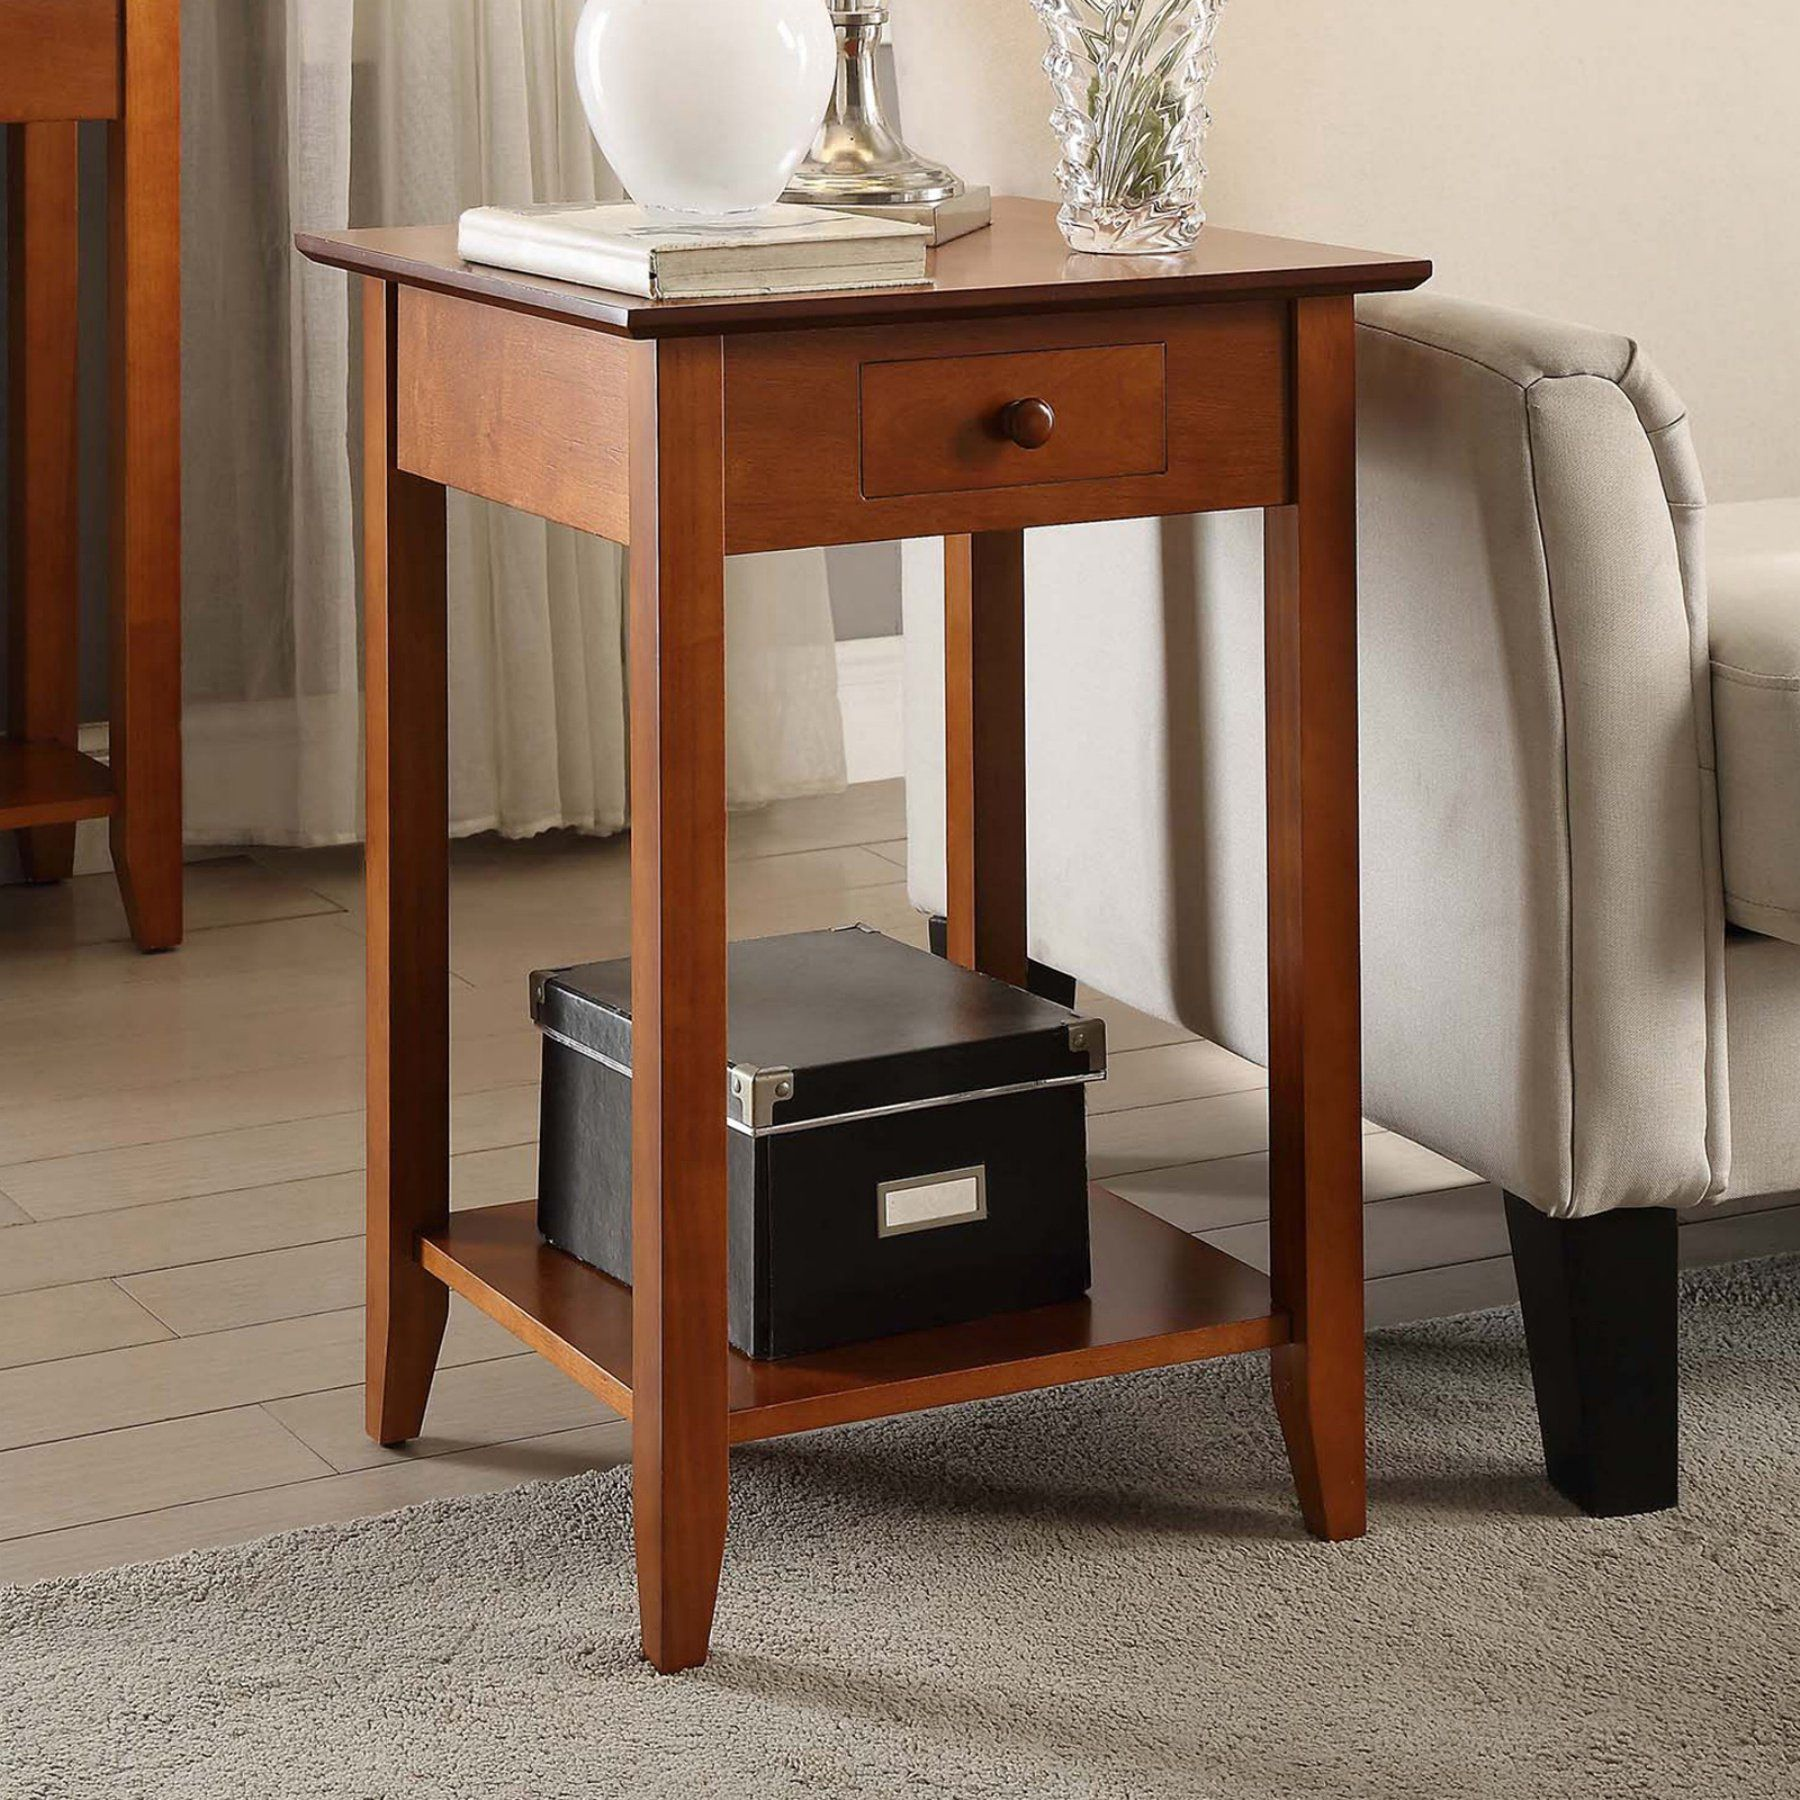 American Heritage Furniture Living Room: Convenience Concepts American Heritage End Table With